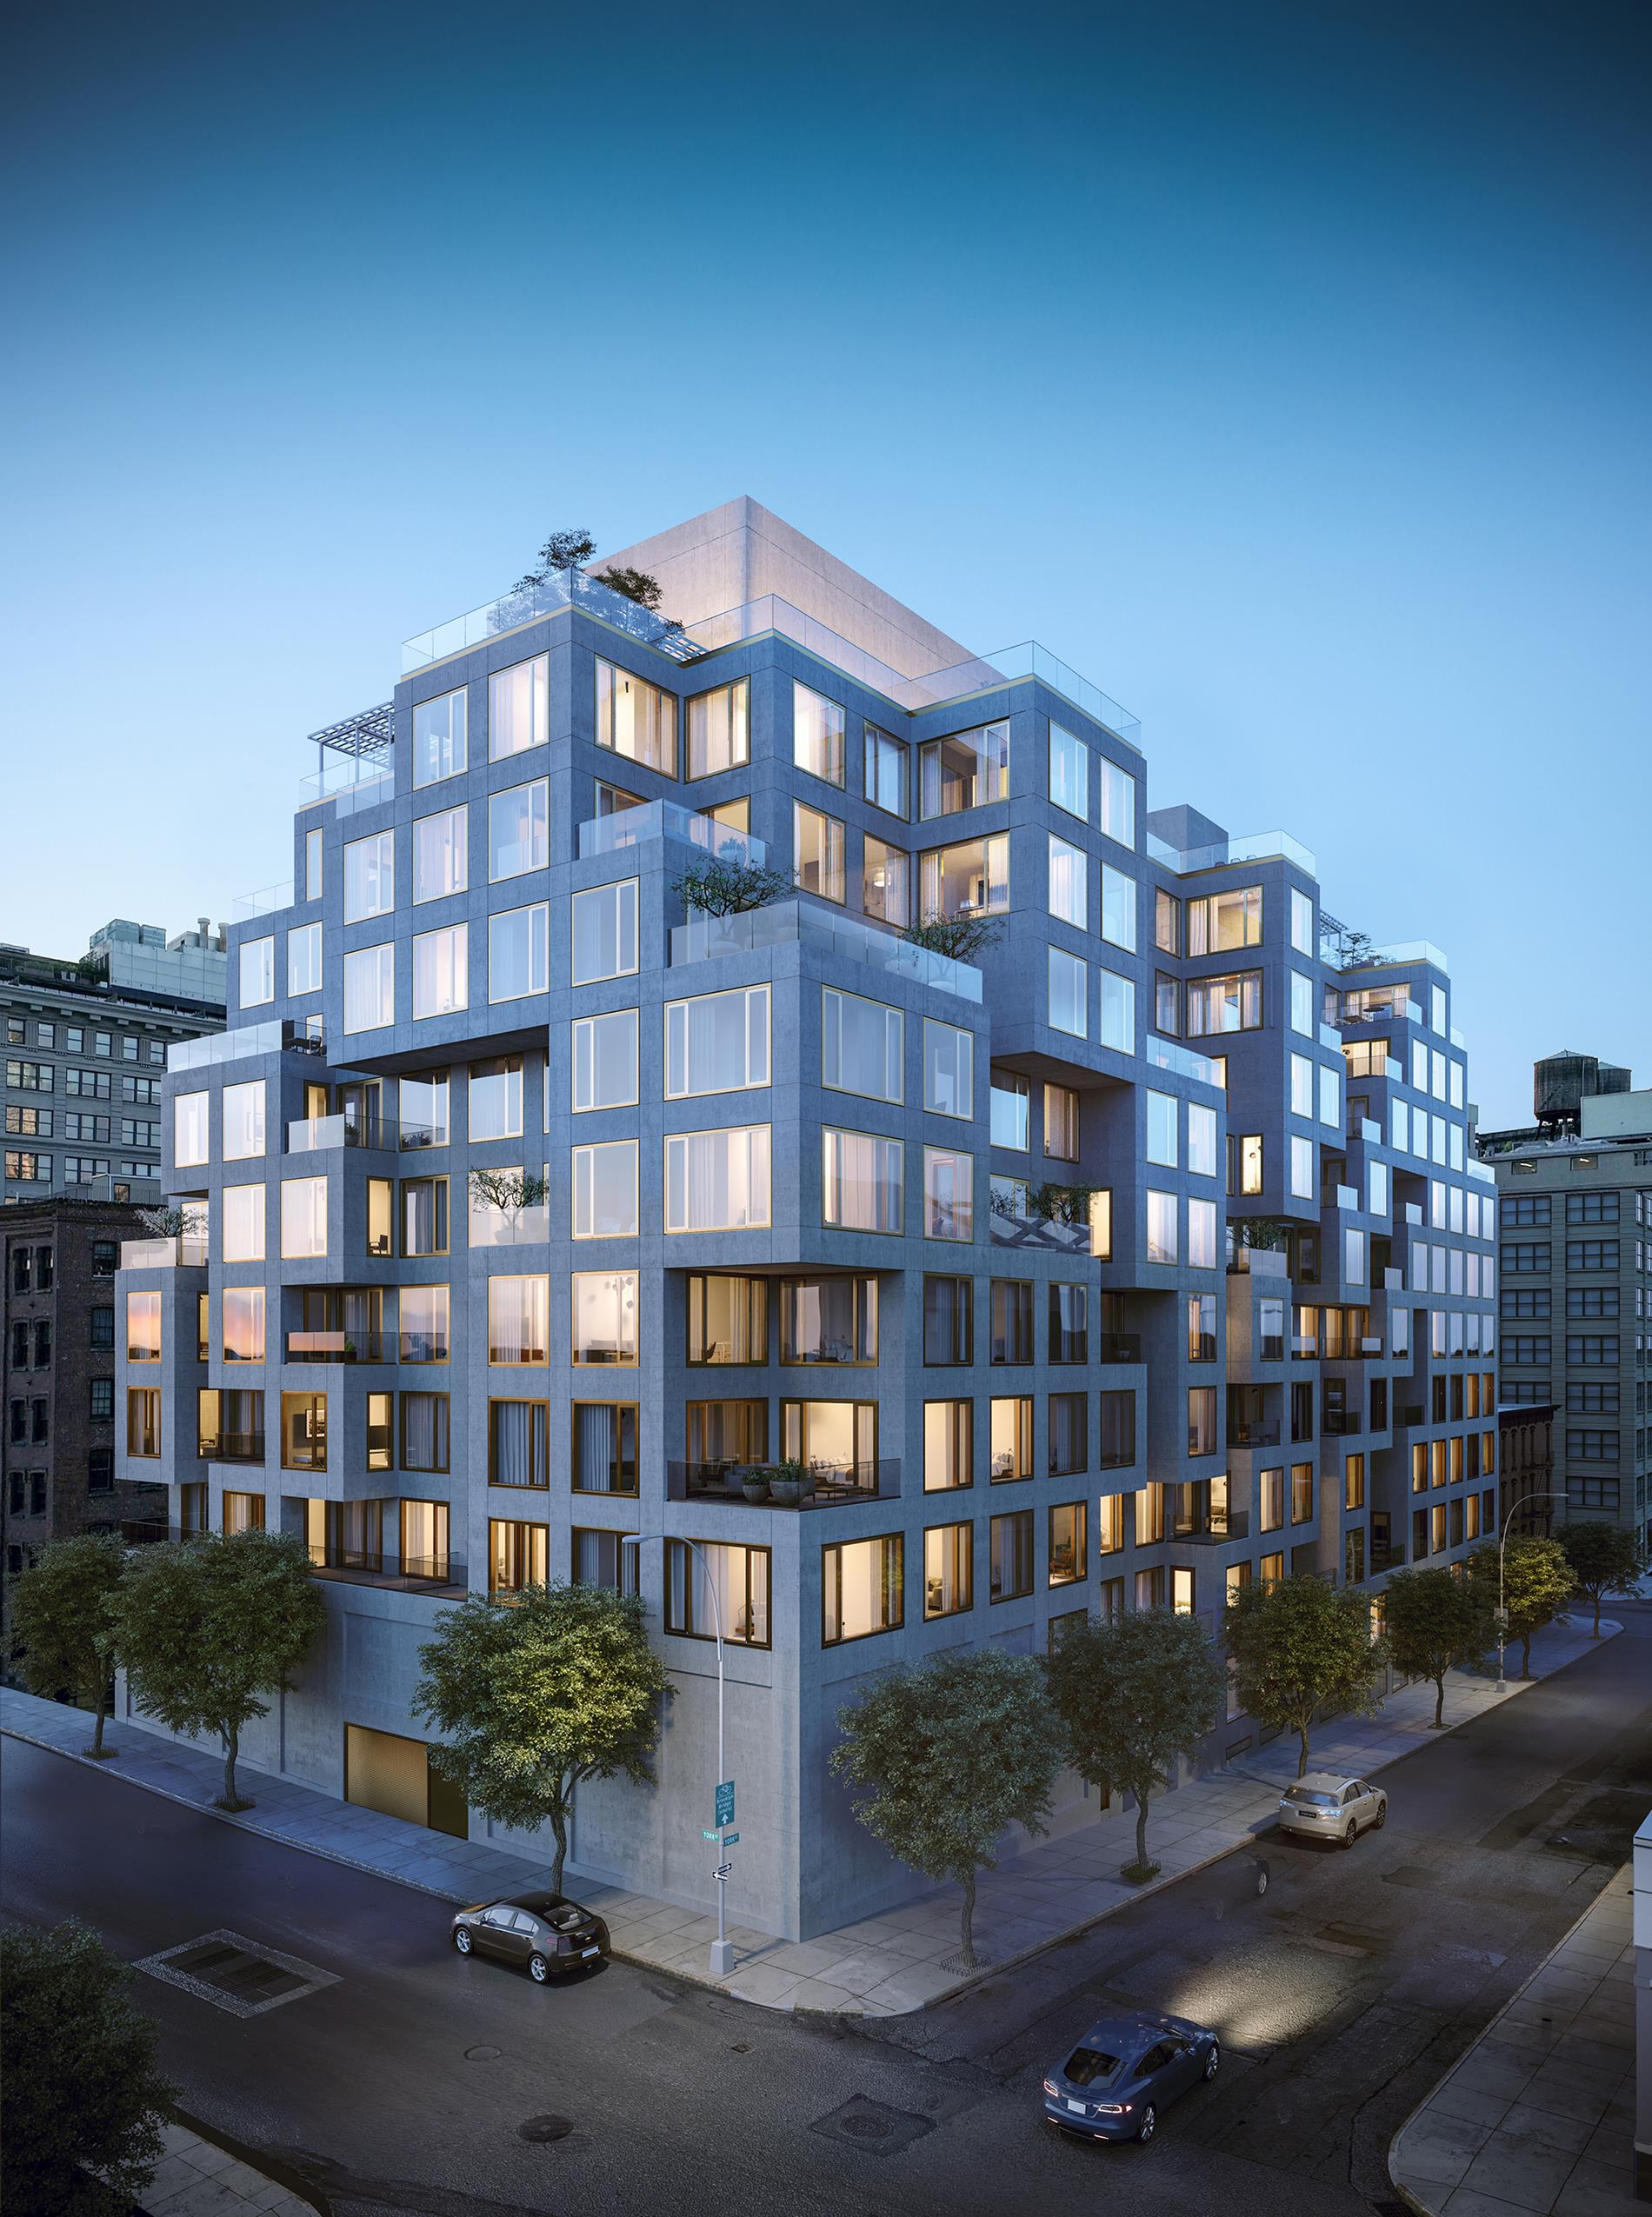 Apartment for sale at 98 Front Street, Apt GR-C